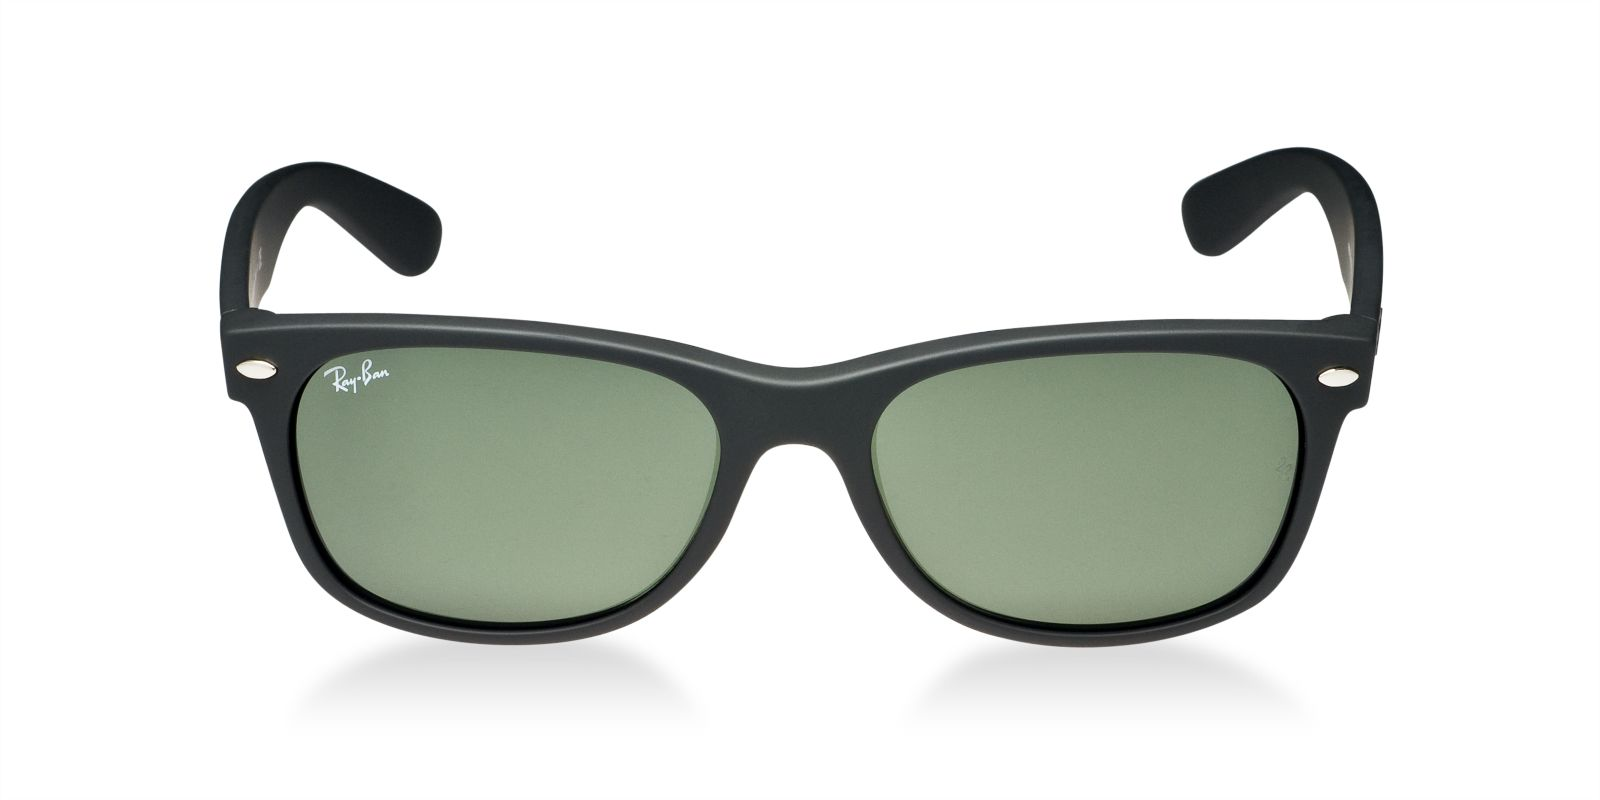 RAY-BAN RB2132 622 MATTE BLACK NEW WAYFARER SUNGLASSES ...